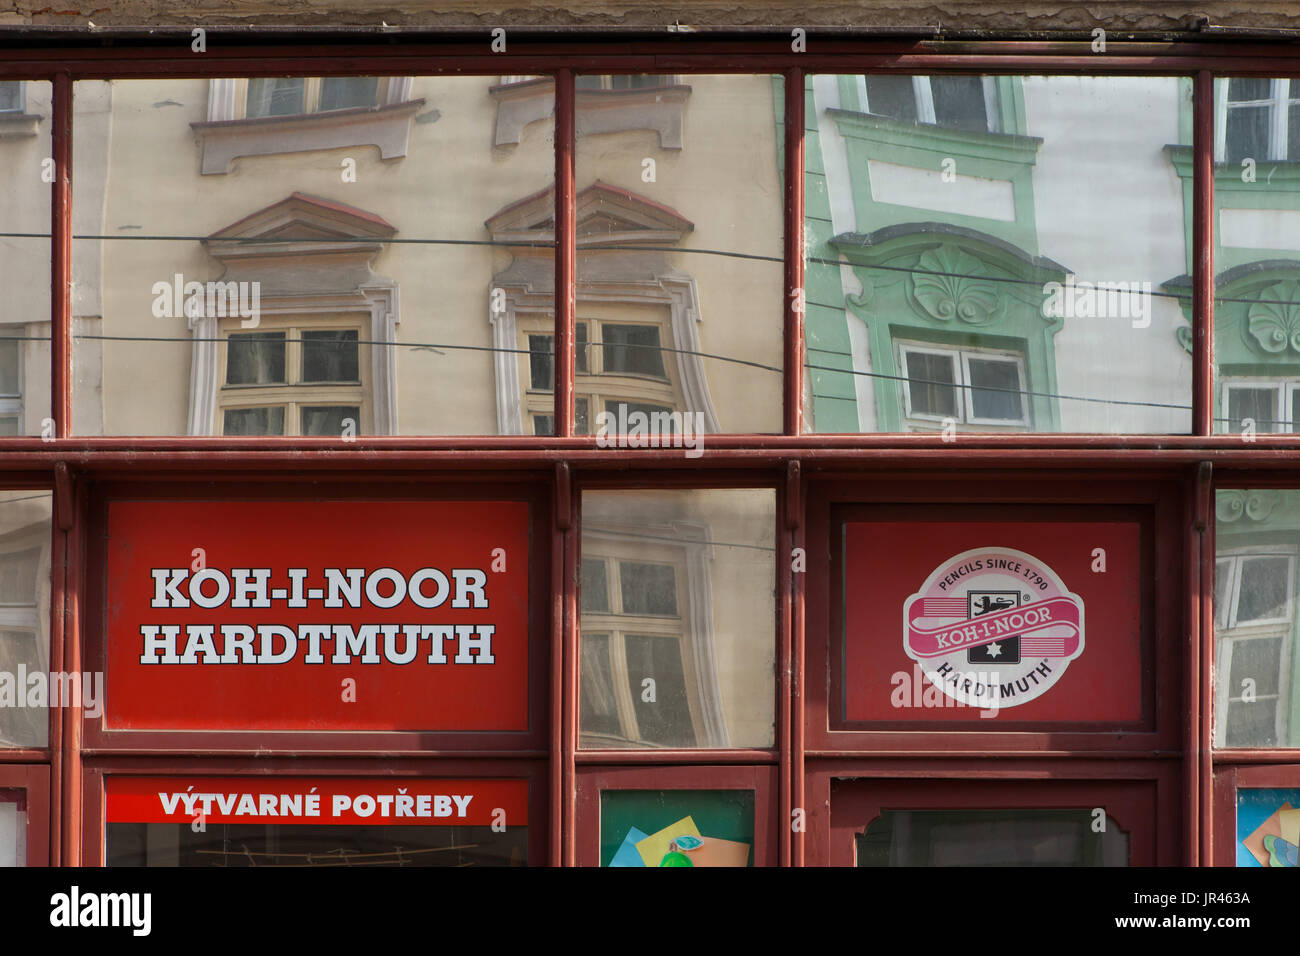 Koh-i-Noor Hardtmuth. Sign of the art supplies company store in Olomouc, Czech Republic. - Stock Image